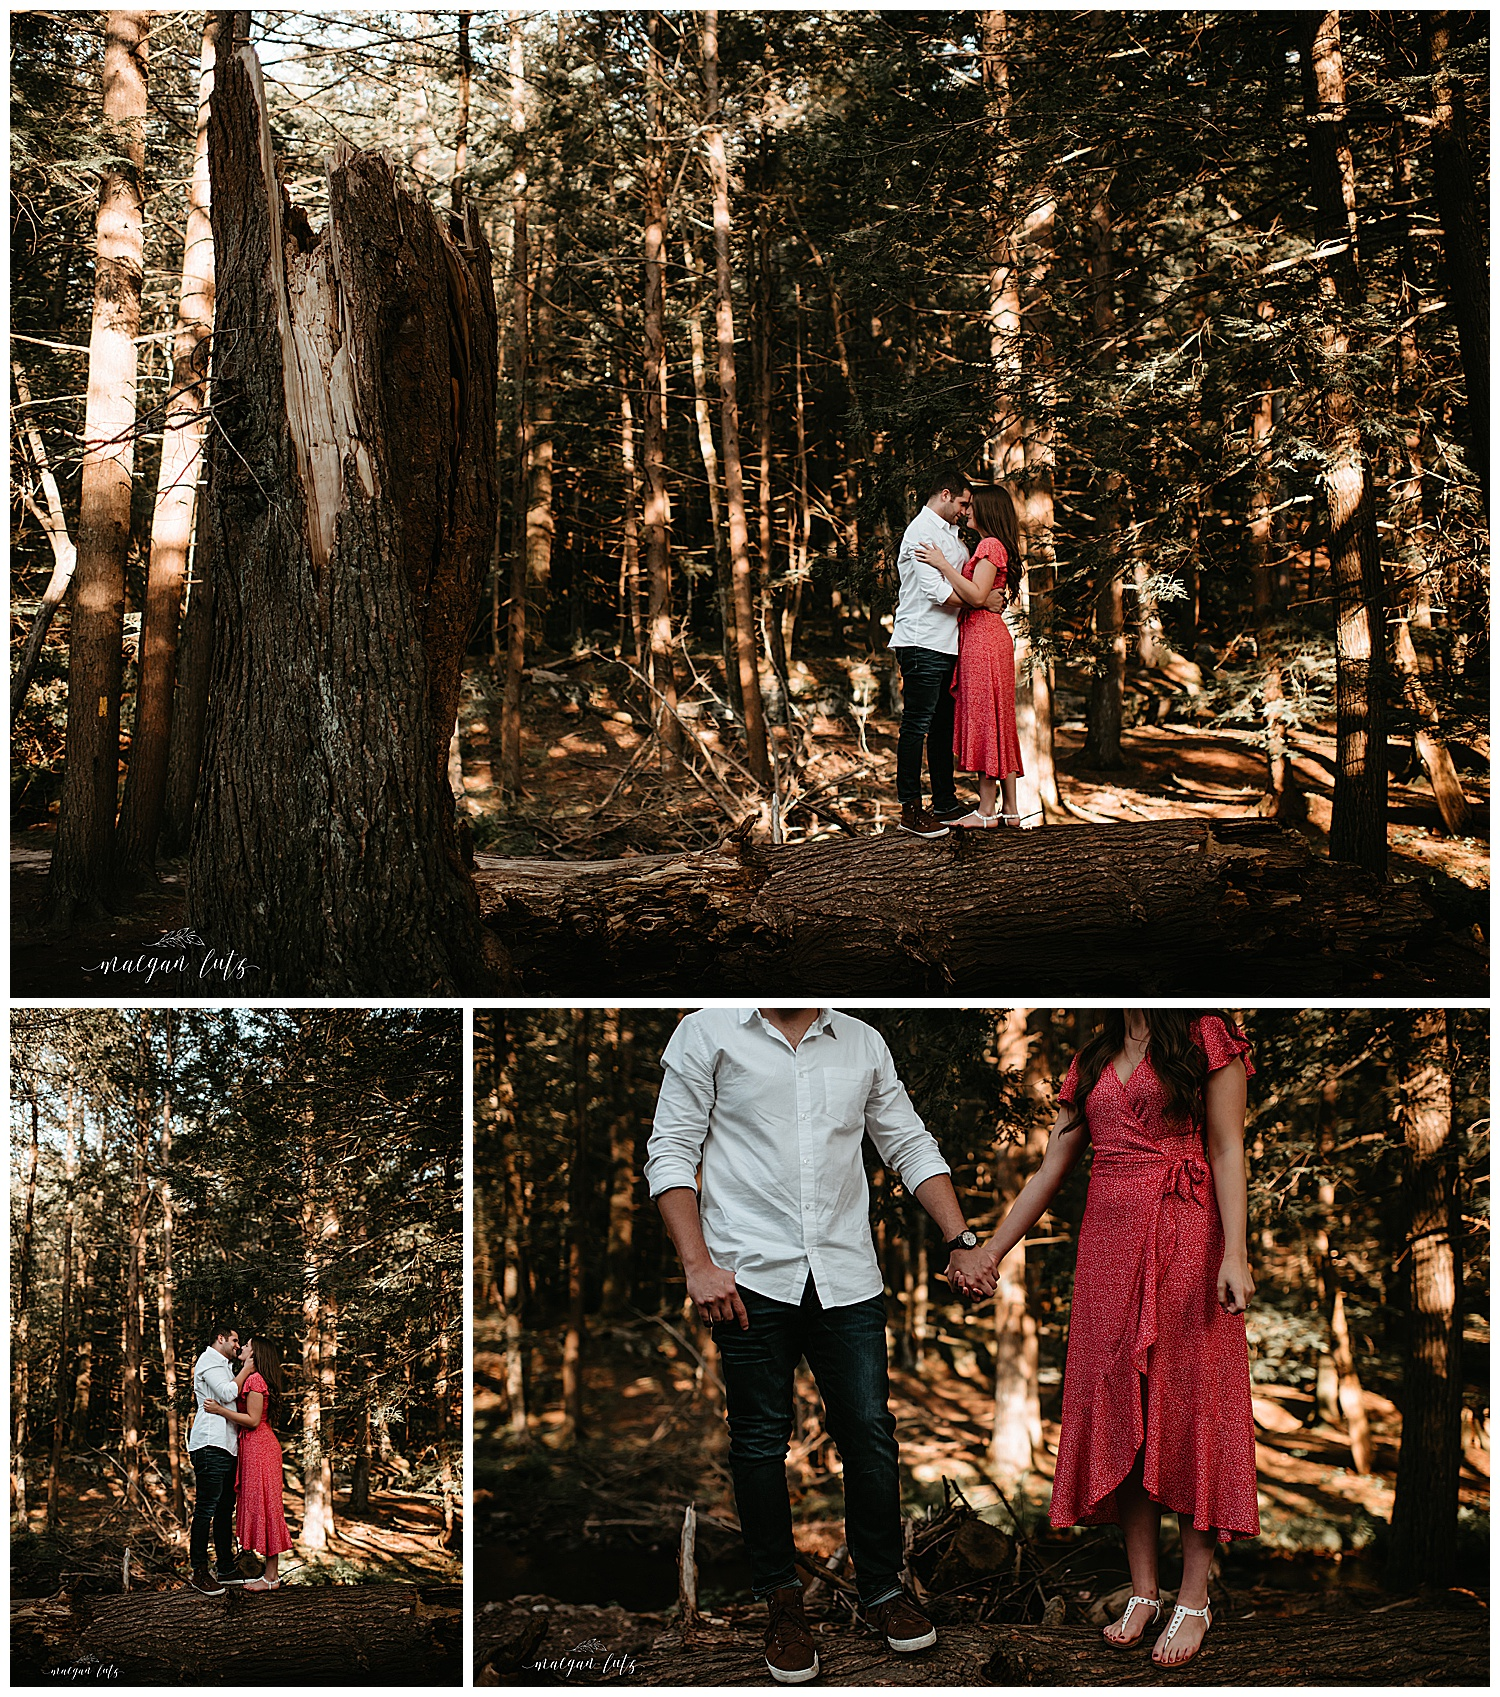 NEPA-Mount-Pocono-Lehigh-Valley-Wedding-Engagement-photographer-at-Hickory-Run-State-Park-Whitehaven-PA_0004.jpg